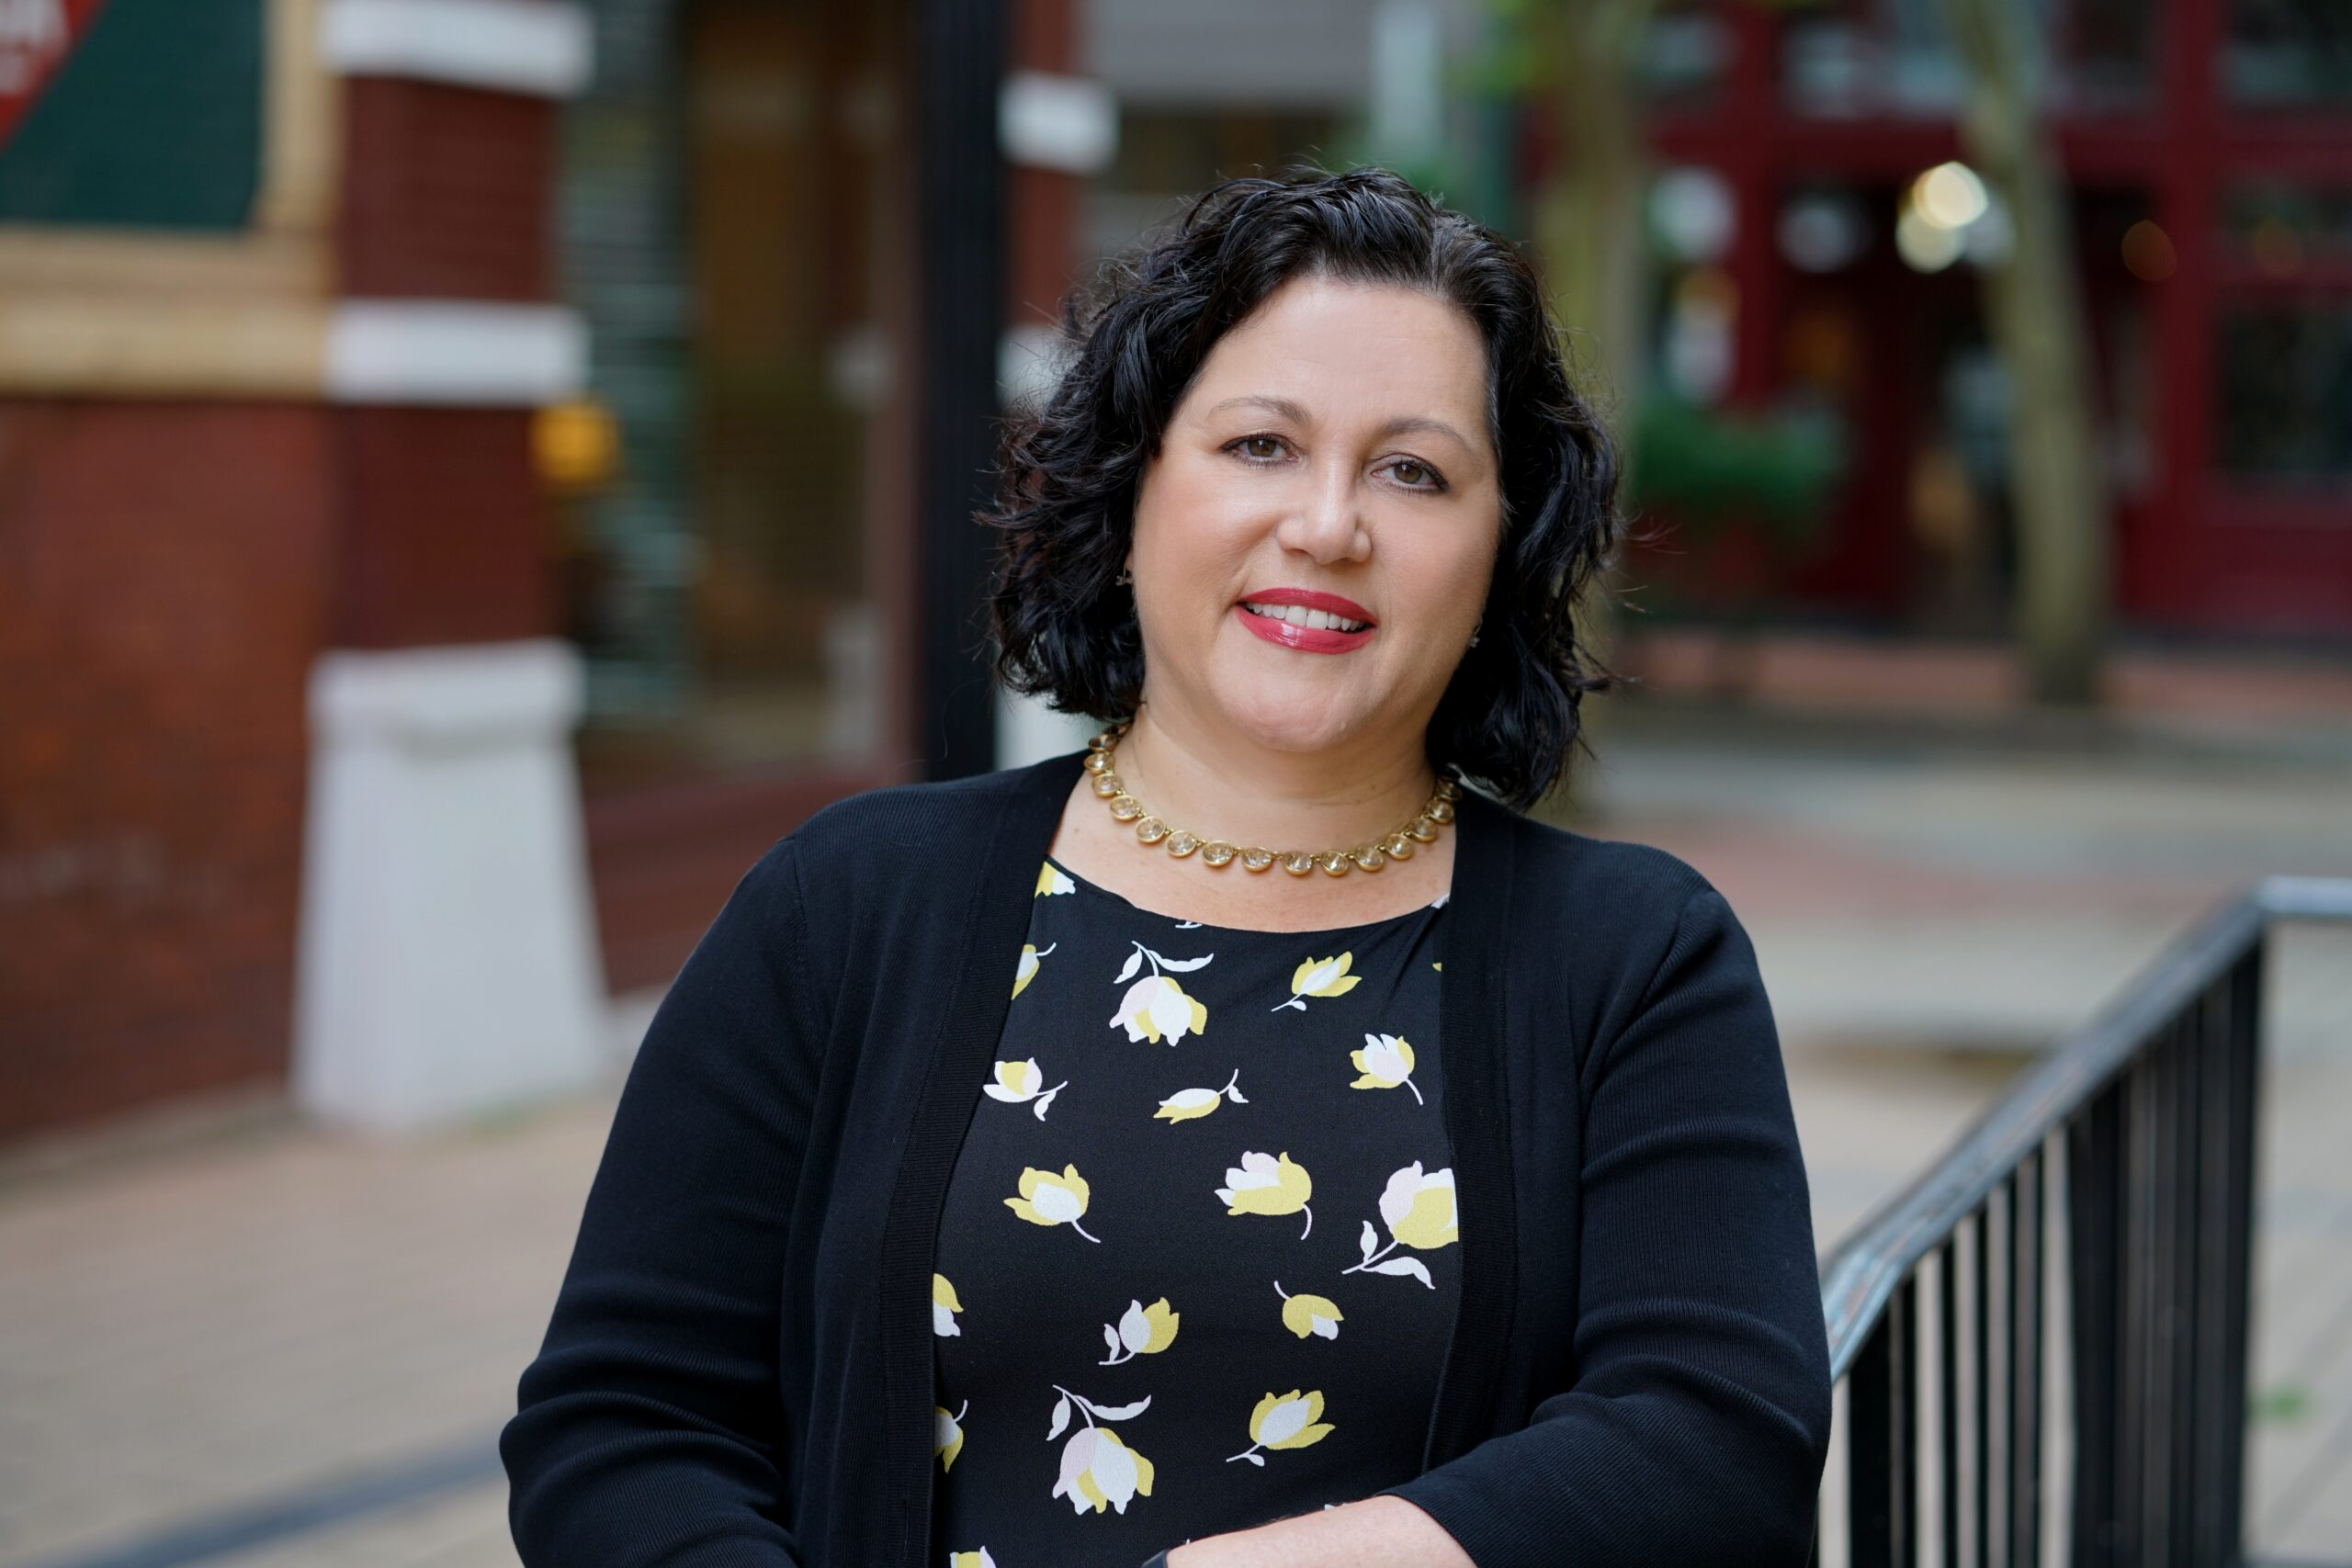 Headshot of Beth Nesselrodt, Stonerise Vice President of Human Resources